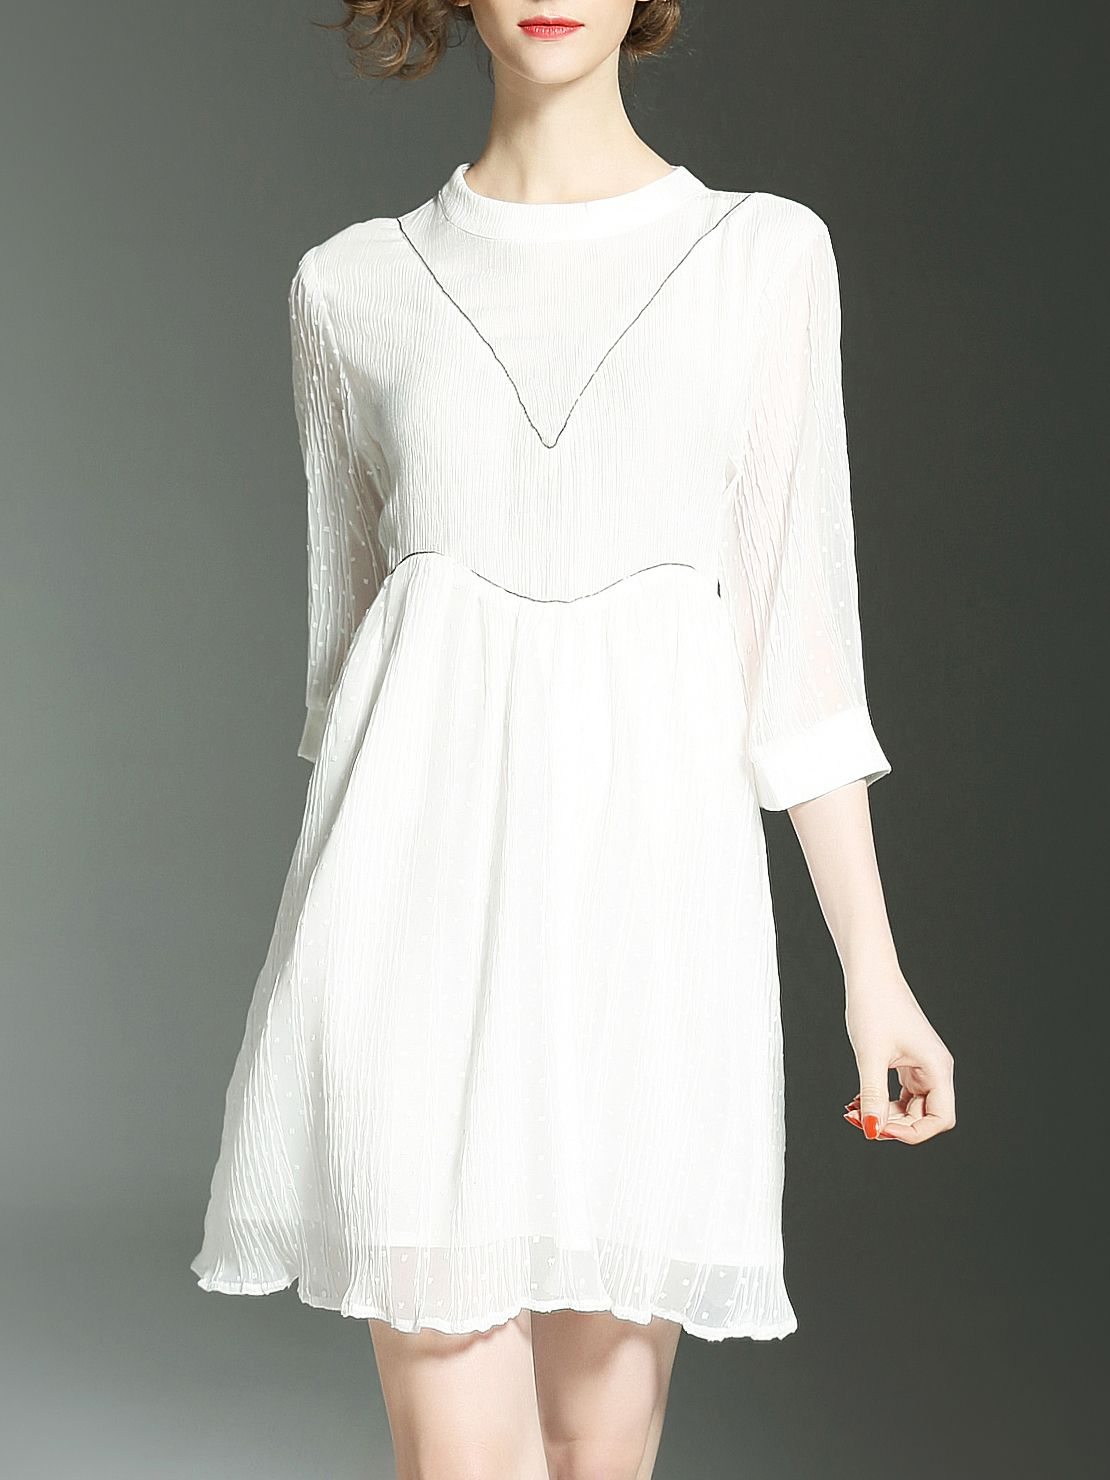 Buy it now. White Pleated Hollow A-Line Dress. White Round Neck Half Sleeve Polyester A Line Short Plain Fabric has some stretch Summer Elegant Day Dresses. , vestidoinformal, casual, camiseta, playeros, informales, túnica, estilocamiseta, camisola, vestidodealgodón, vestidosdealgodón, verano, informal, playa, playero, capa, capas, vestidobabydoll, camisole, túnica, shift, pleat, pleated, drape, t-shape, daisy, foldedshoulder, summer, loosefit, tunictop, swing, day, offtheshoulder, smock,...